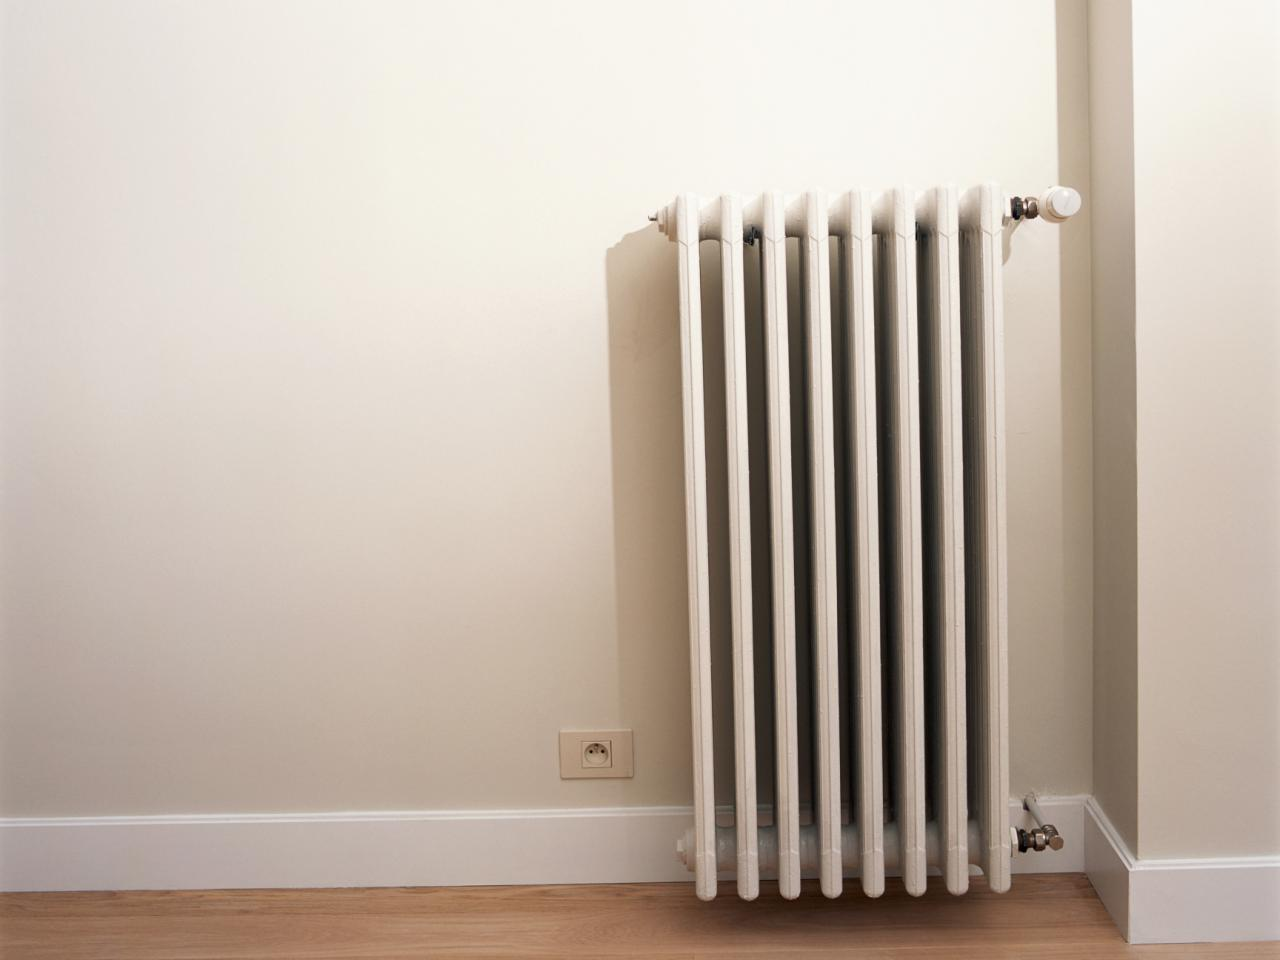 Boiler systems and radiators may be best heating choice hgtv for What is the best type of heating system for homes